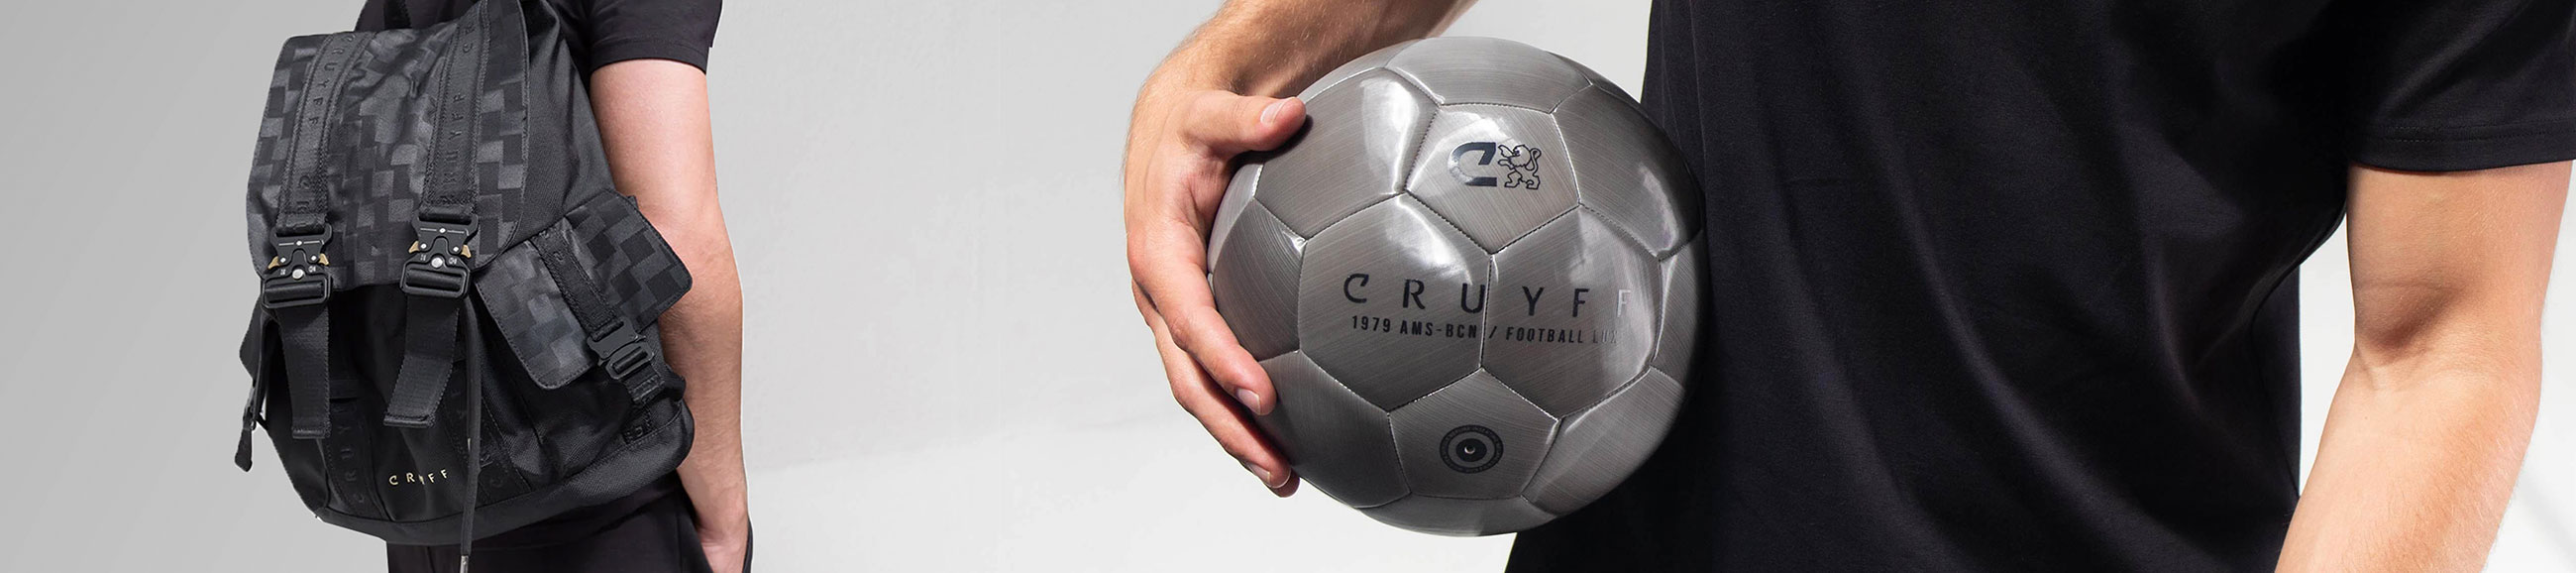 Shop all Cruyff collectors items | Pay later with Klarna | Fast worldwide delivery